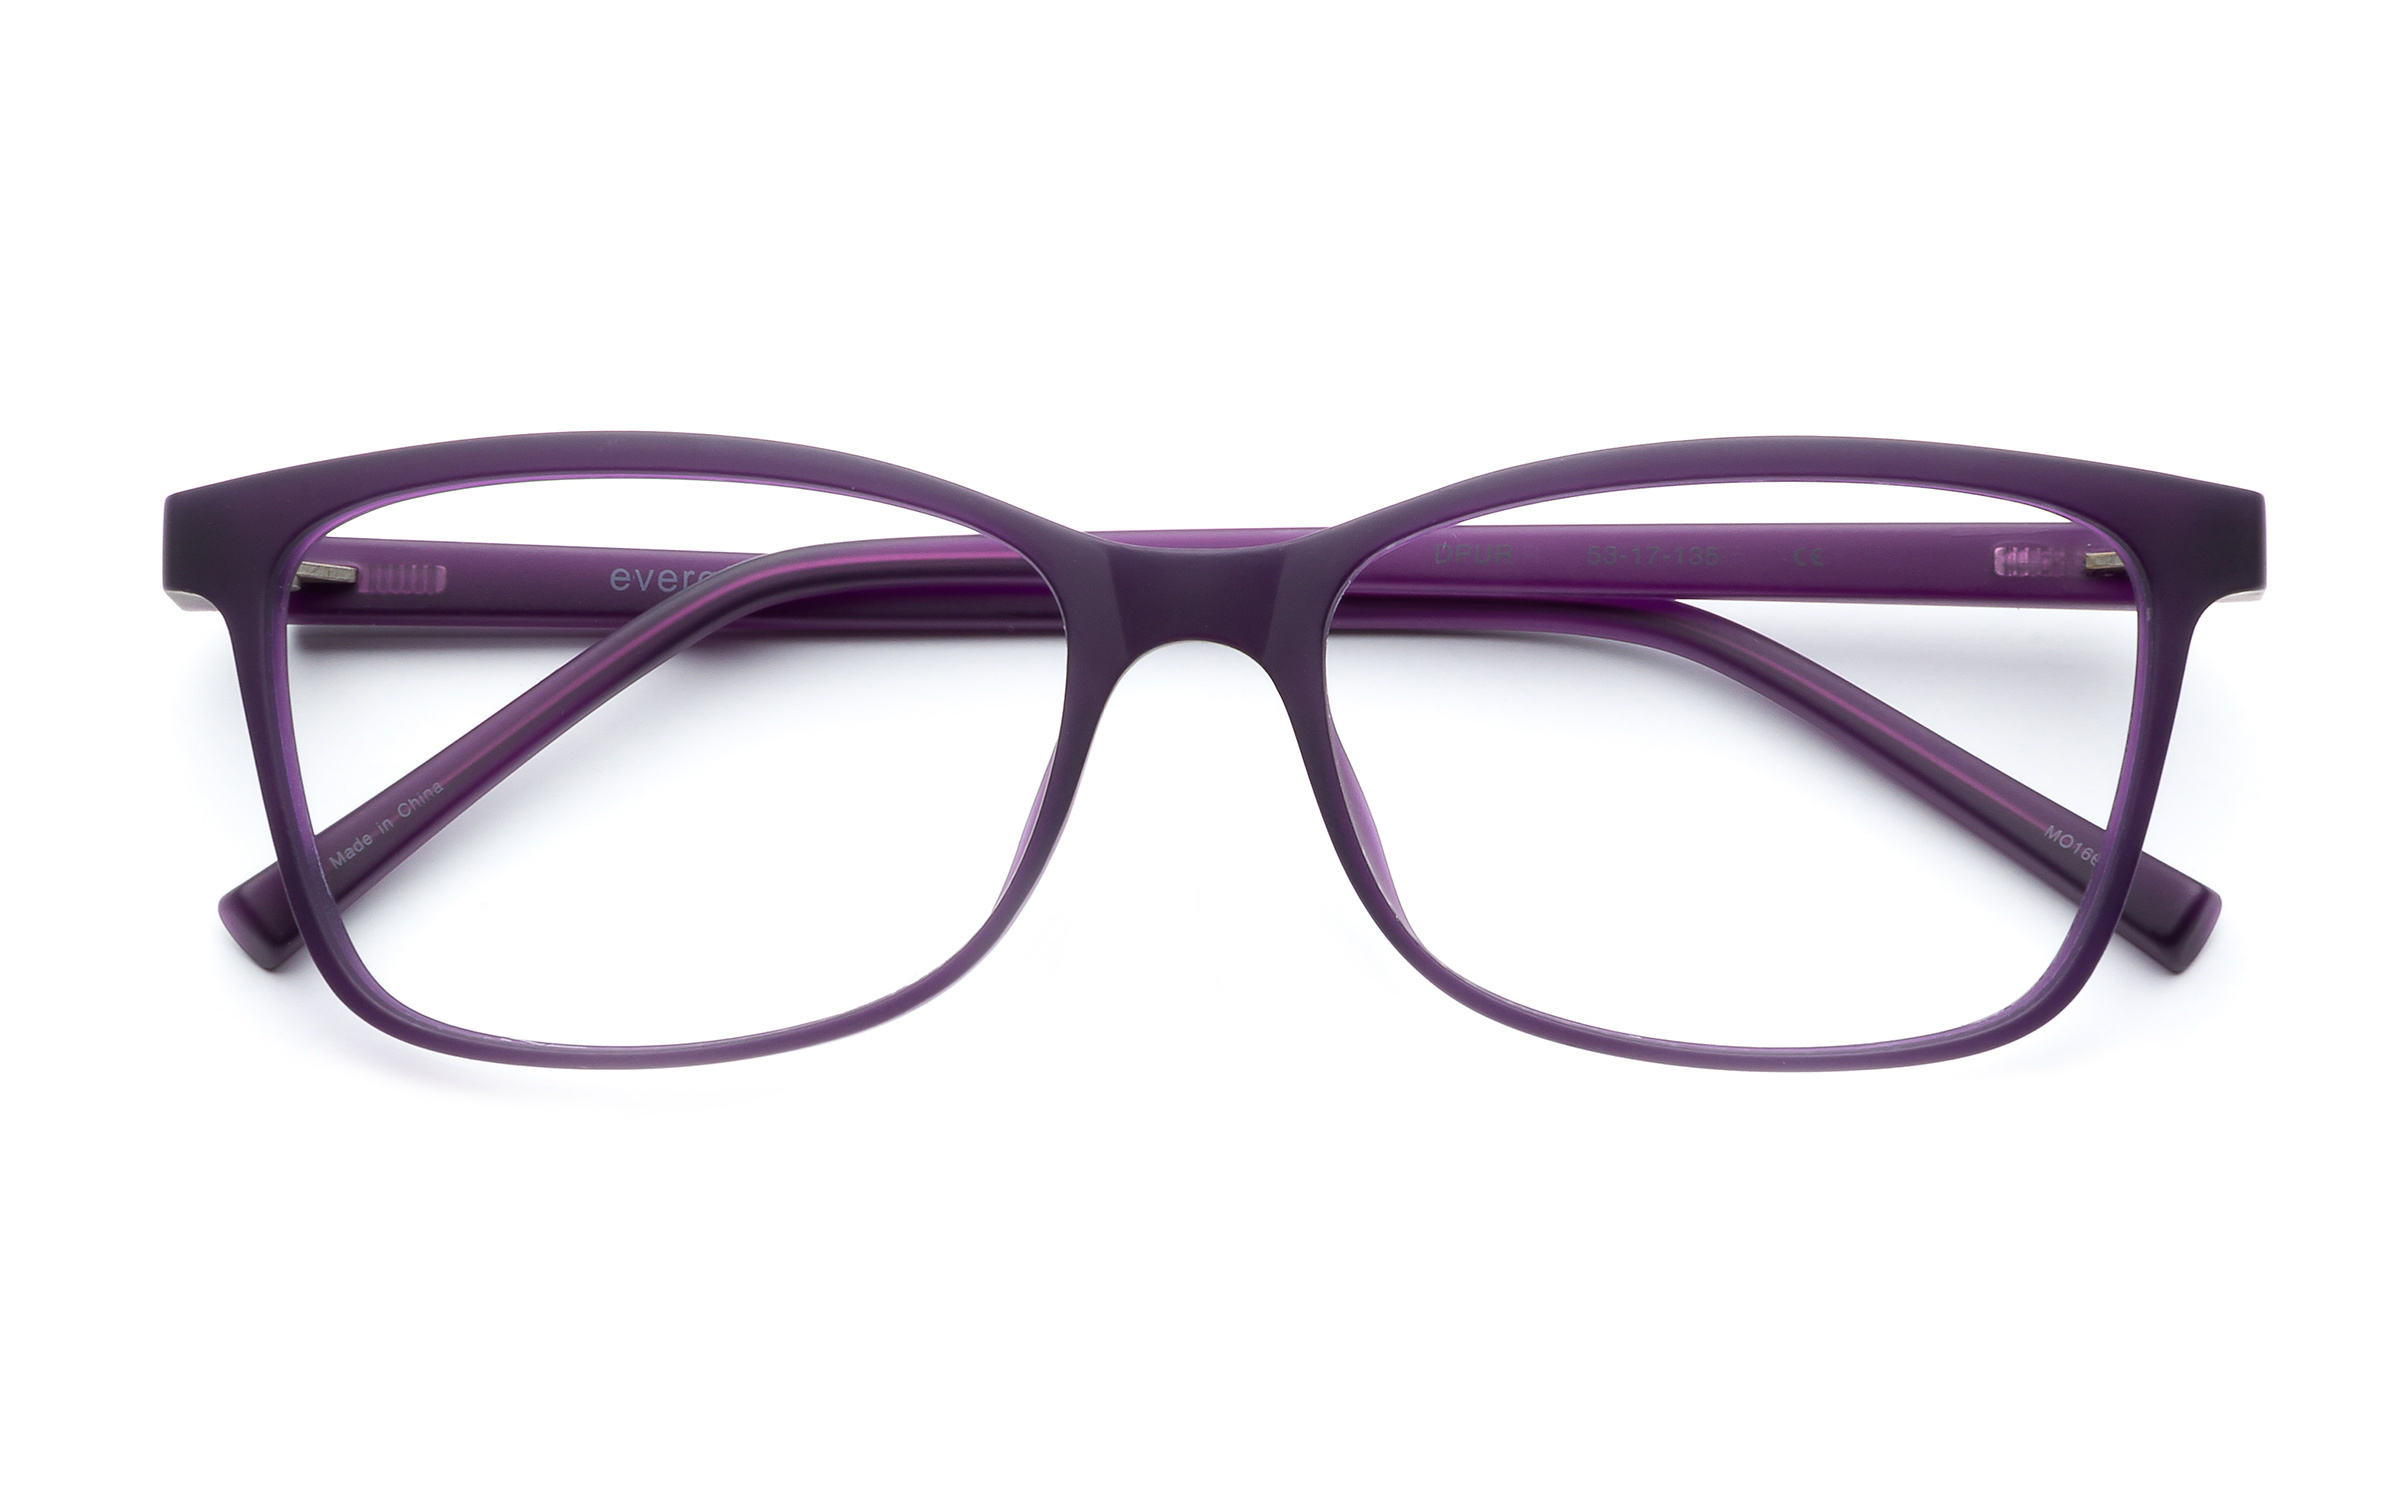 shop with confidence for evergreen 6044 53 glasses